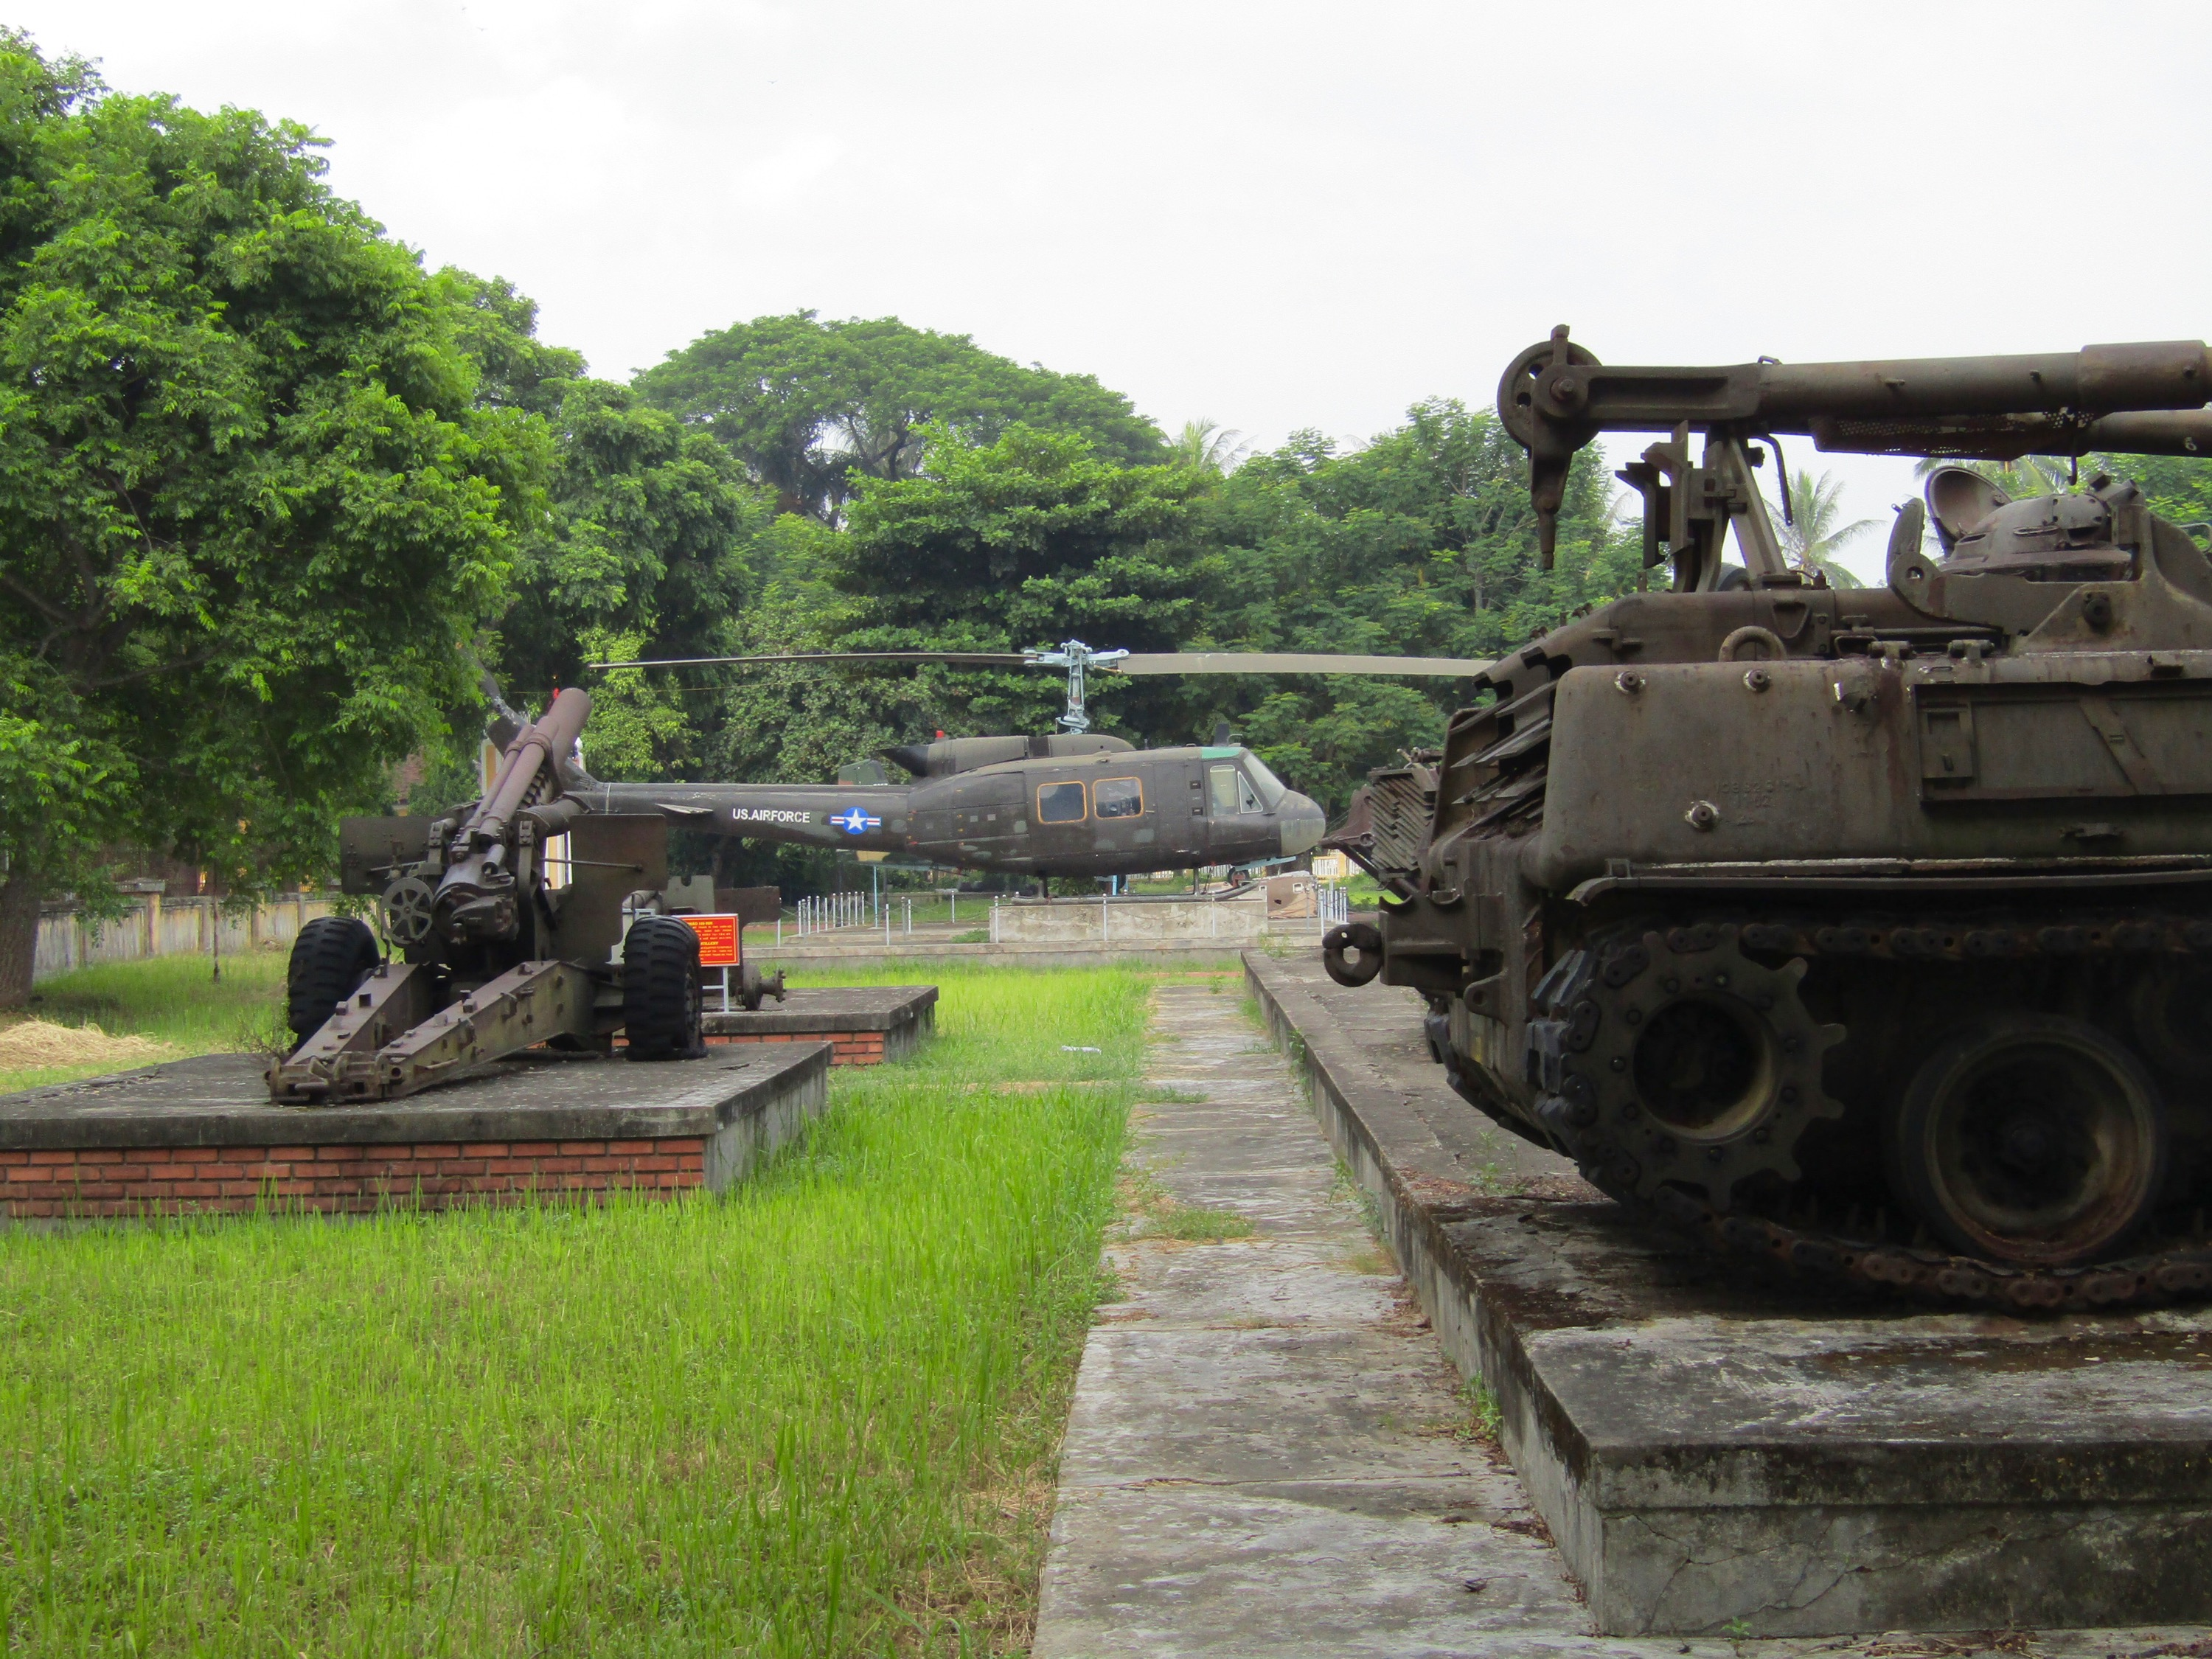 Hearing about the other side of the Vietnam War has been one of the more fascinating parts of this experience. Outside the Imperial Palace, a museum displays captured U.S. artillery and aircraft like trophies, listing the dates and locations when they were taken by the Communist-led People's Army.